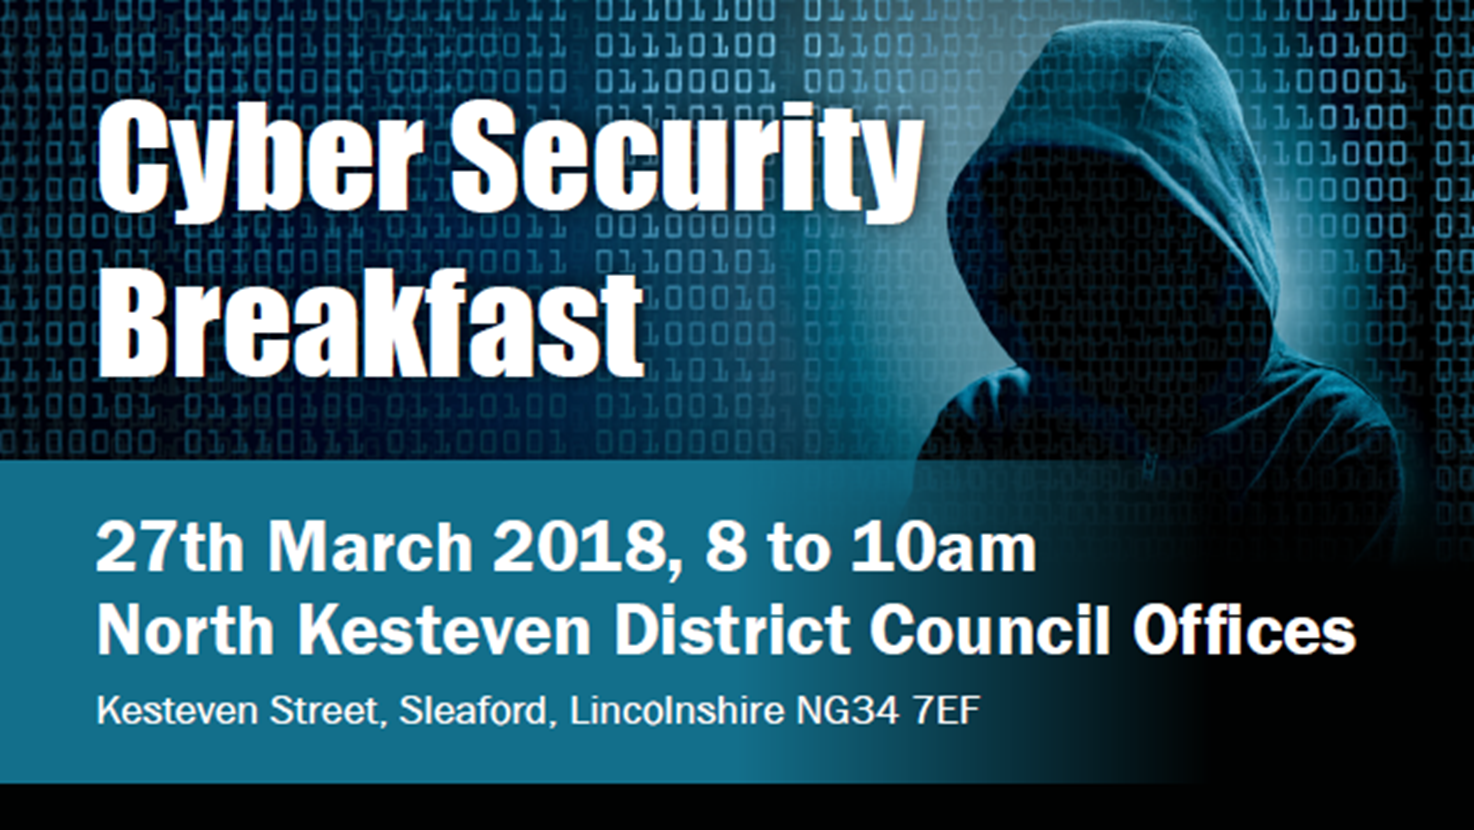 Cyber Security Breakfast: 27th March